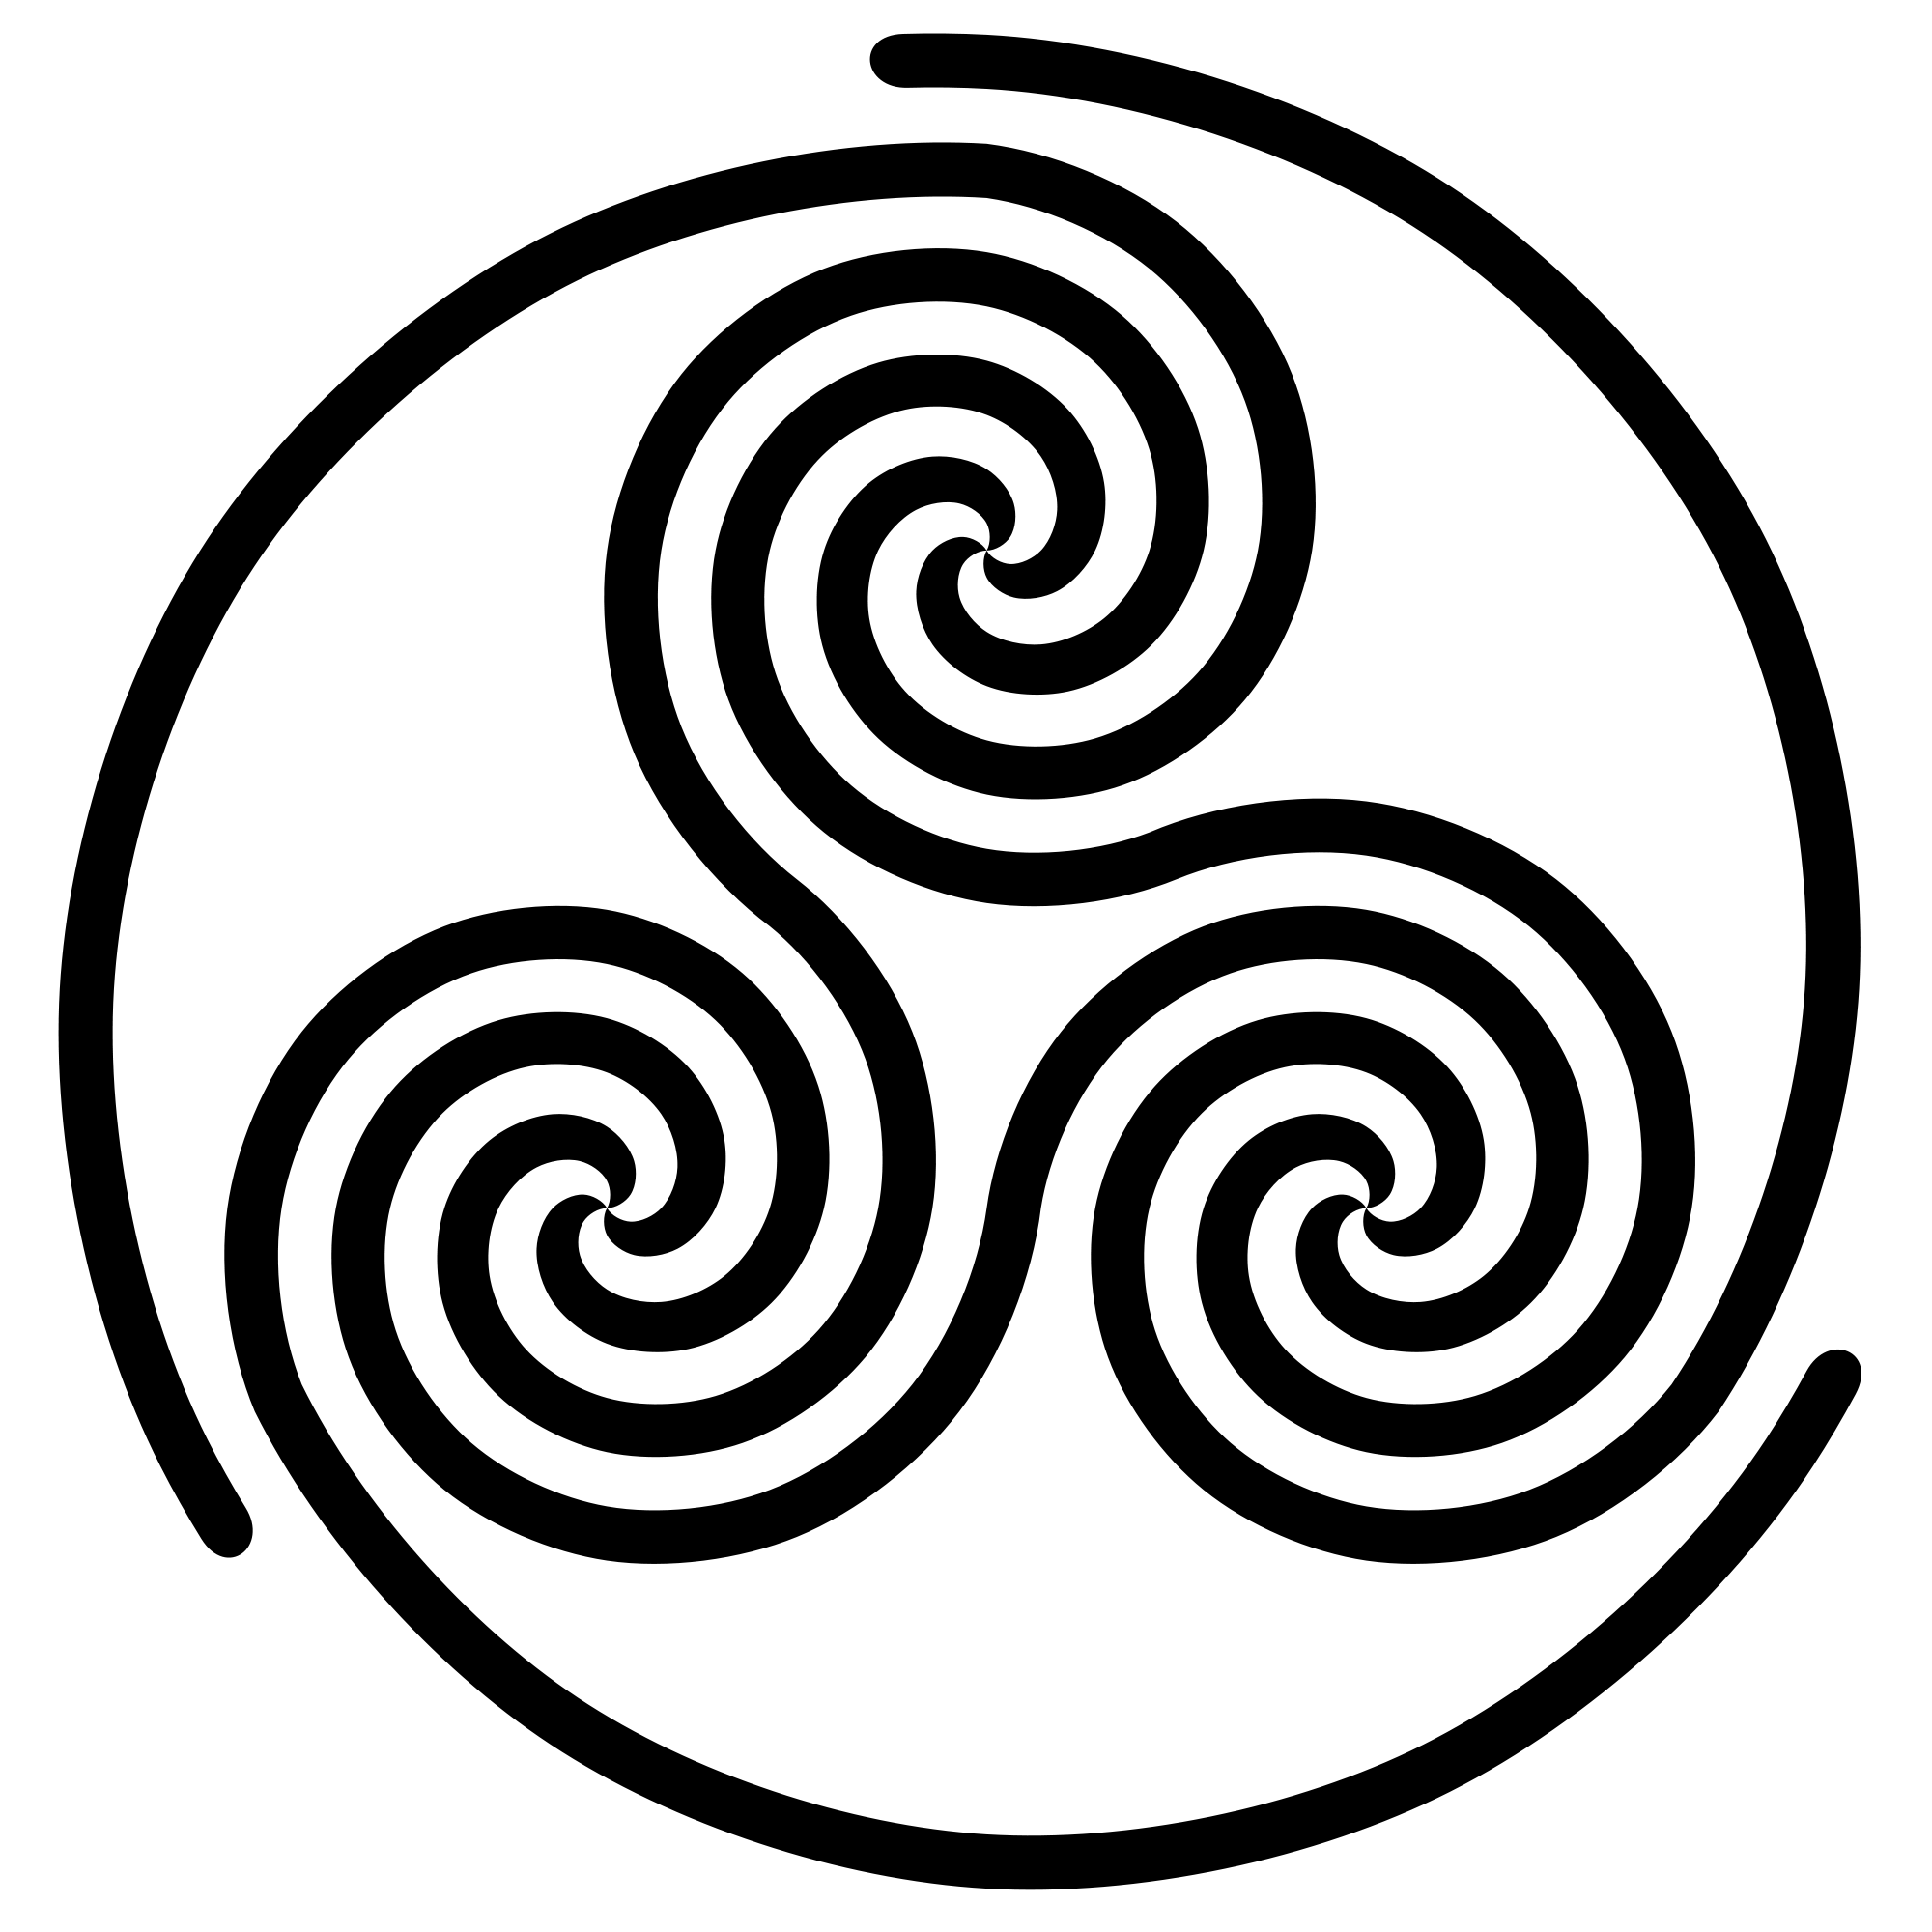 Spiral clipart simple File:Triple Commons Spiral svg simple